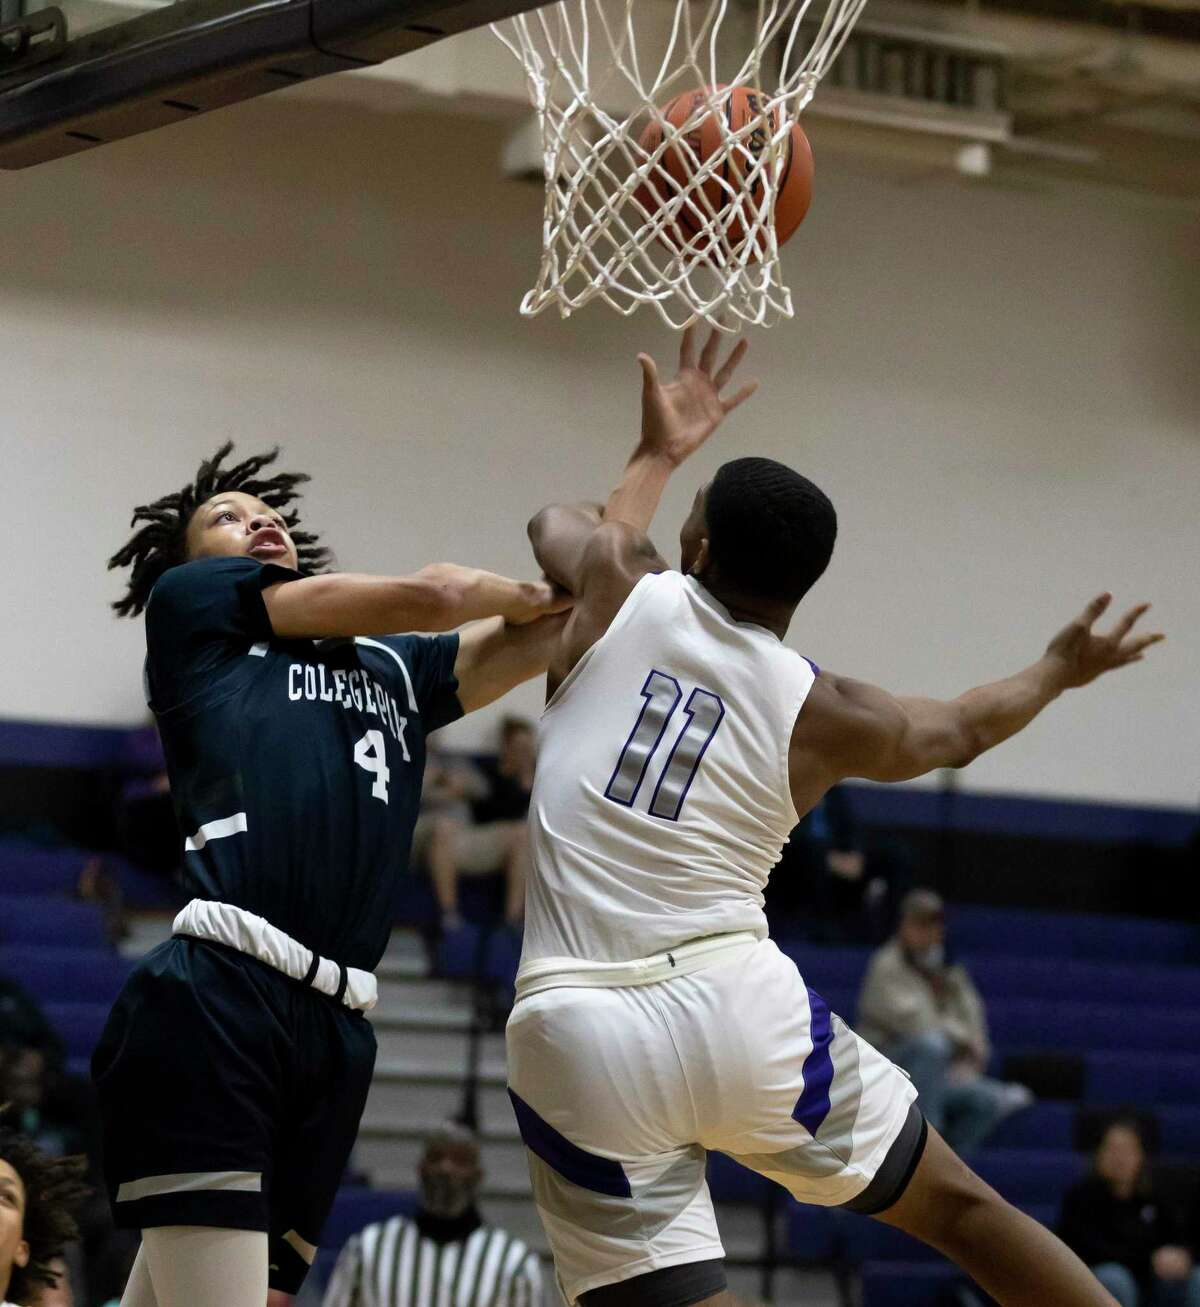 College Park guard Darel Reece (4) misses the basket due to pressure from Willis point guard Terrance Patterson (11) during the first quarter of a District 13-6A boys basketball game at Willis High School, Tuesday, Dec. 22, 2020, in Willis.